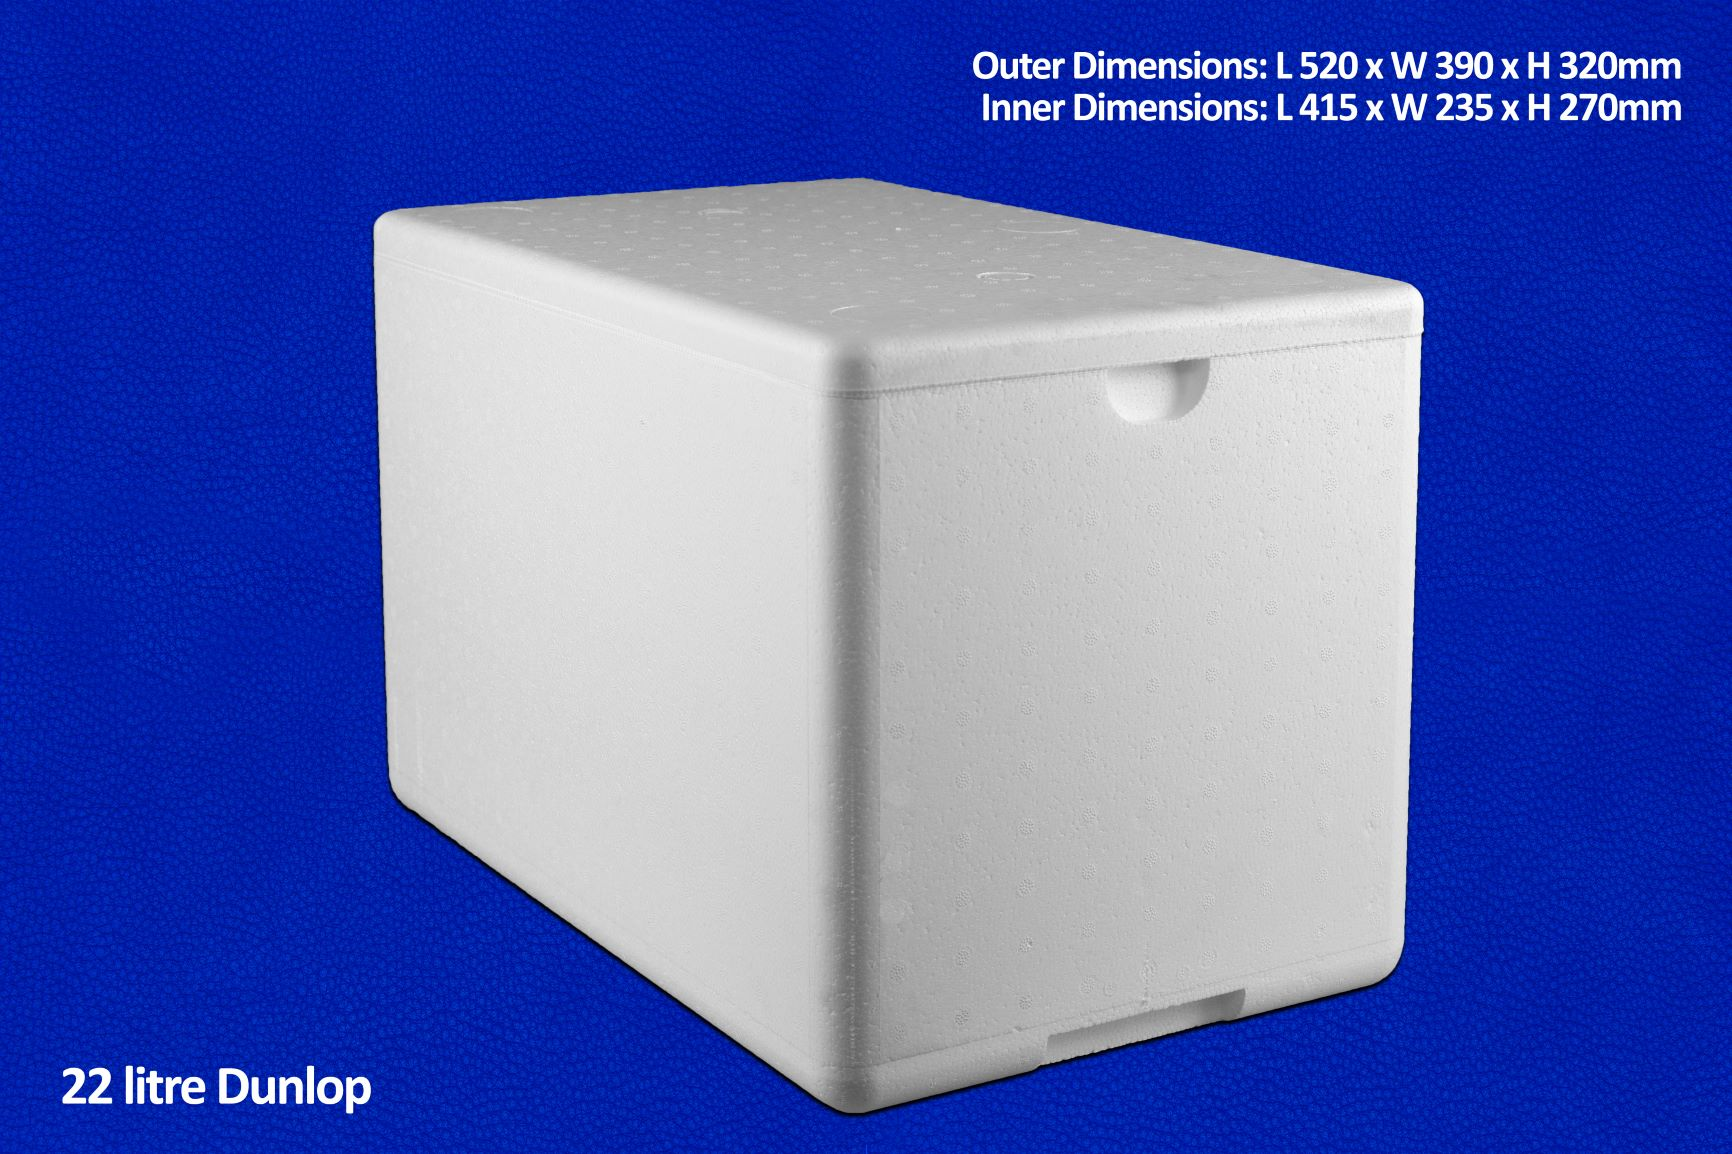 22 litre dunlop ice container